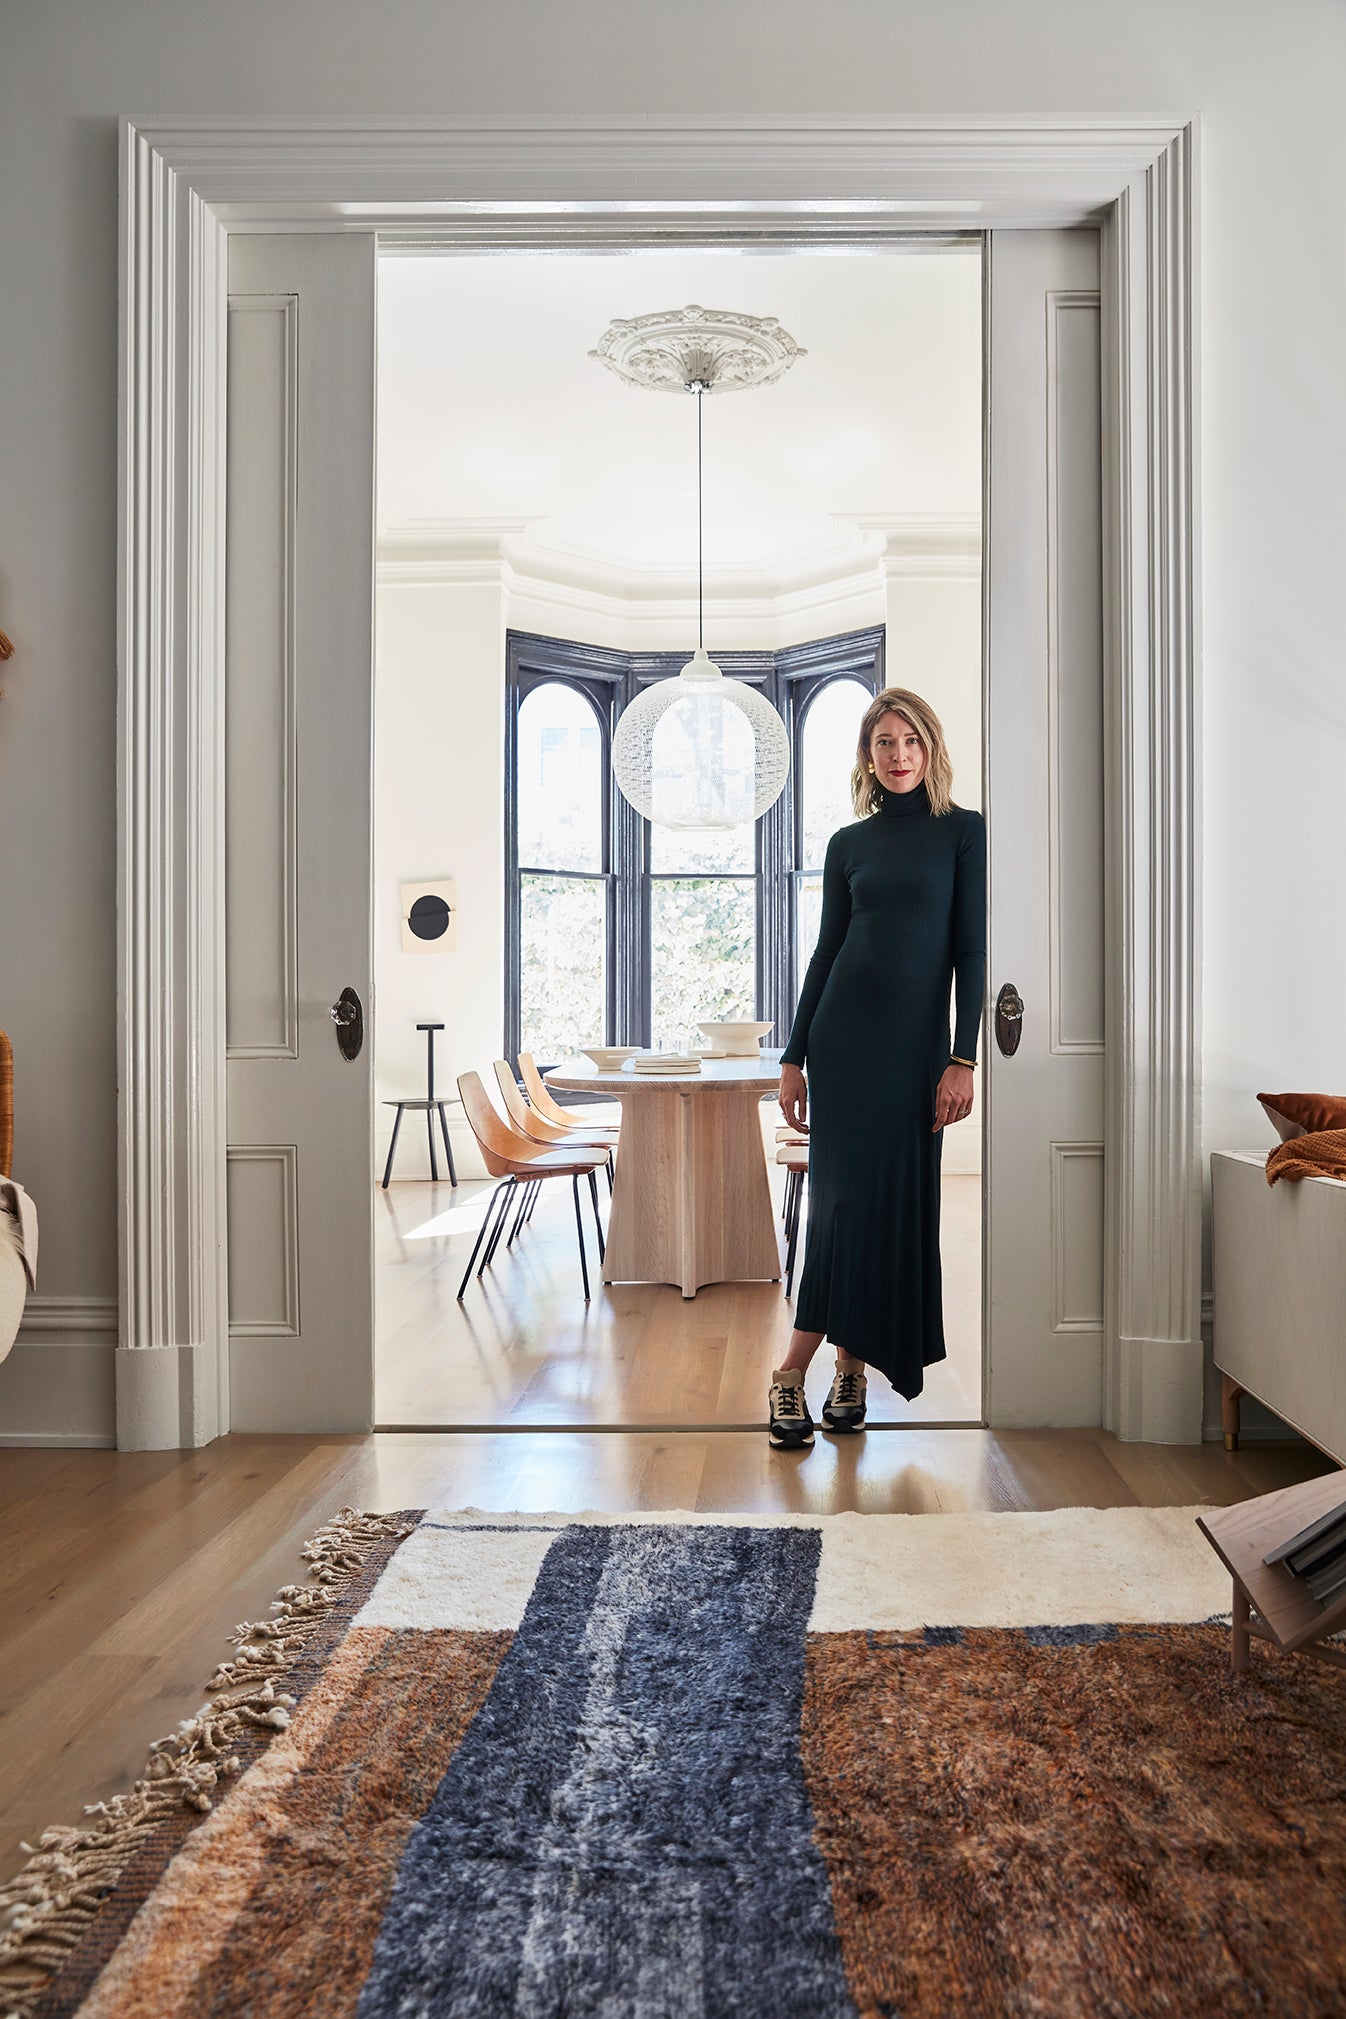 What Does It Take to Make an 1850s Victorian Home Feel Thoroughly Modern?